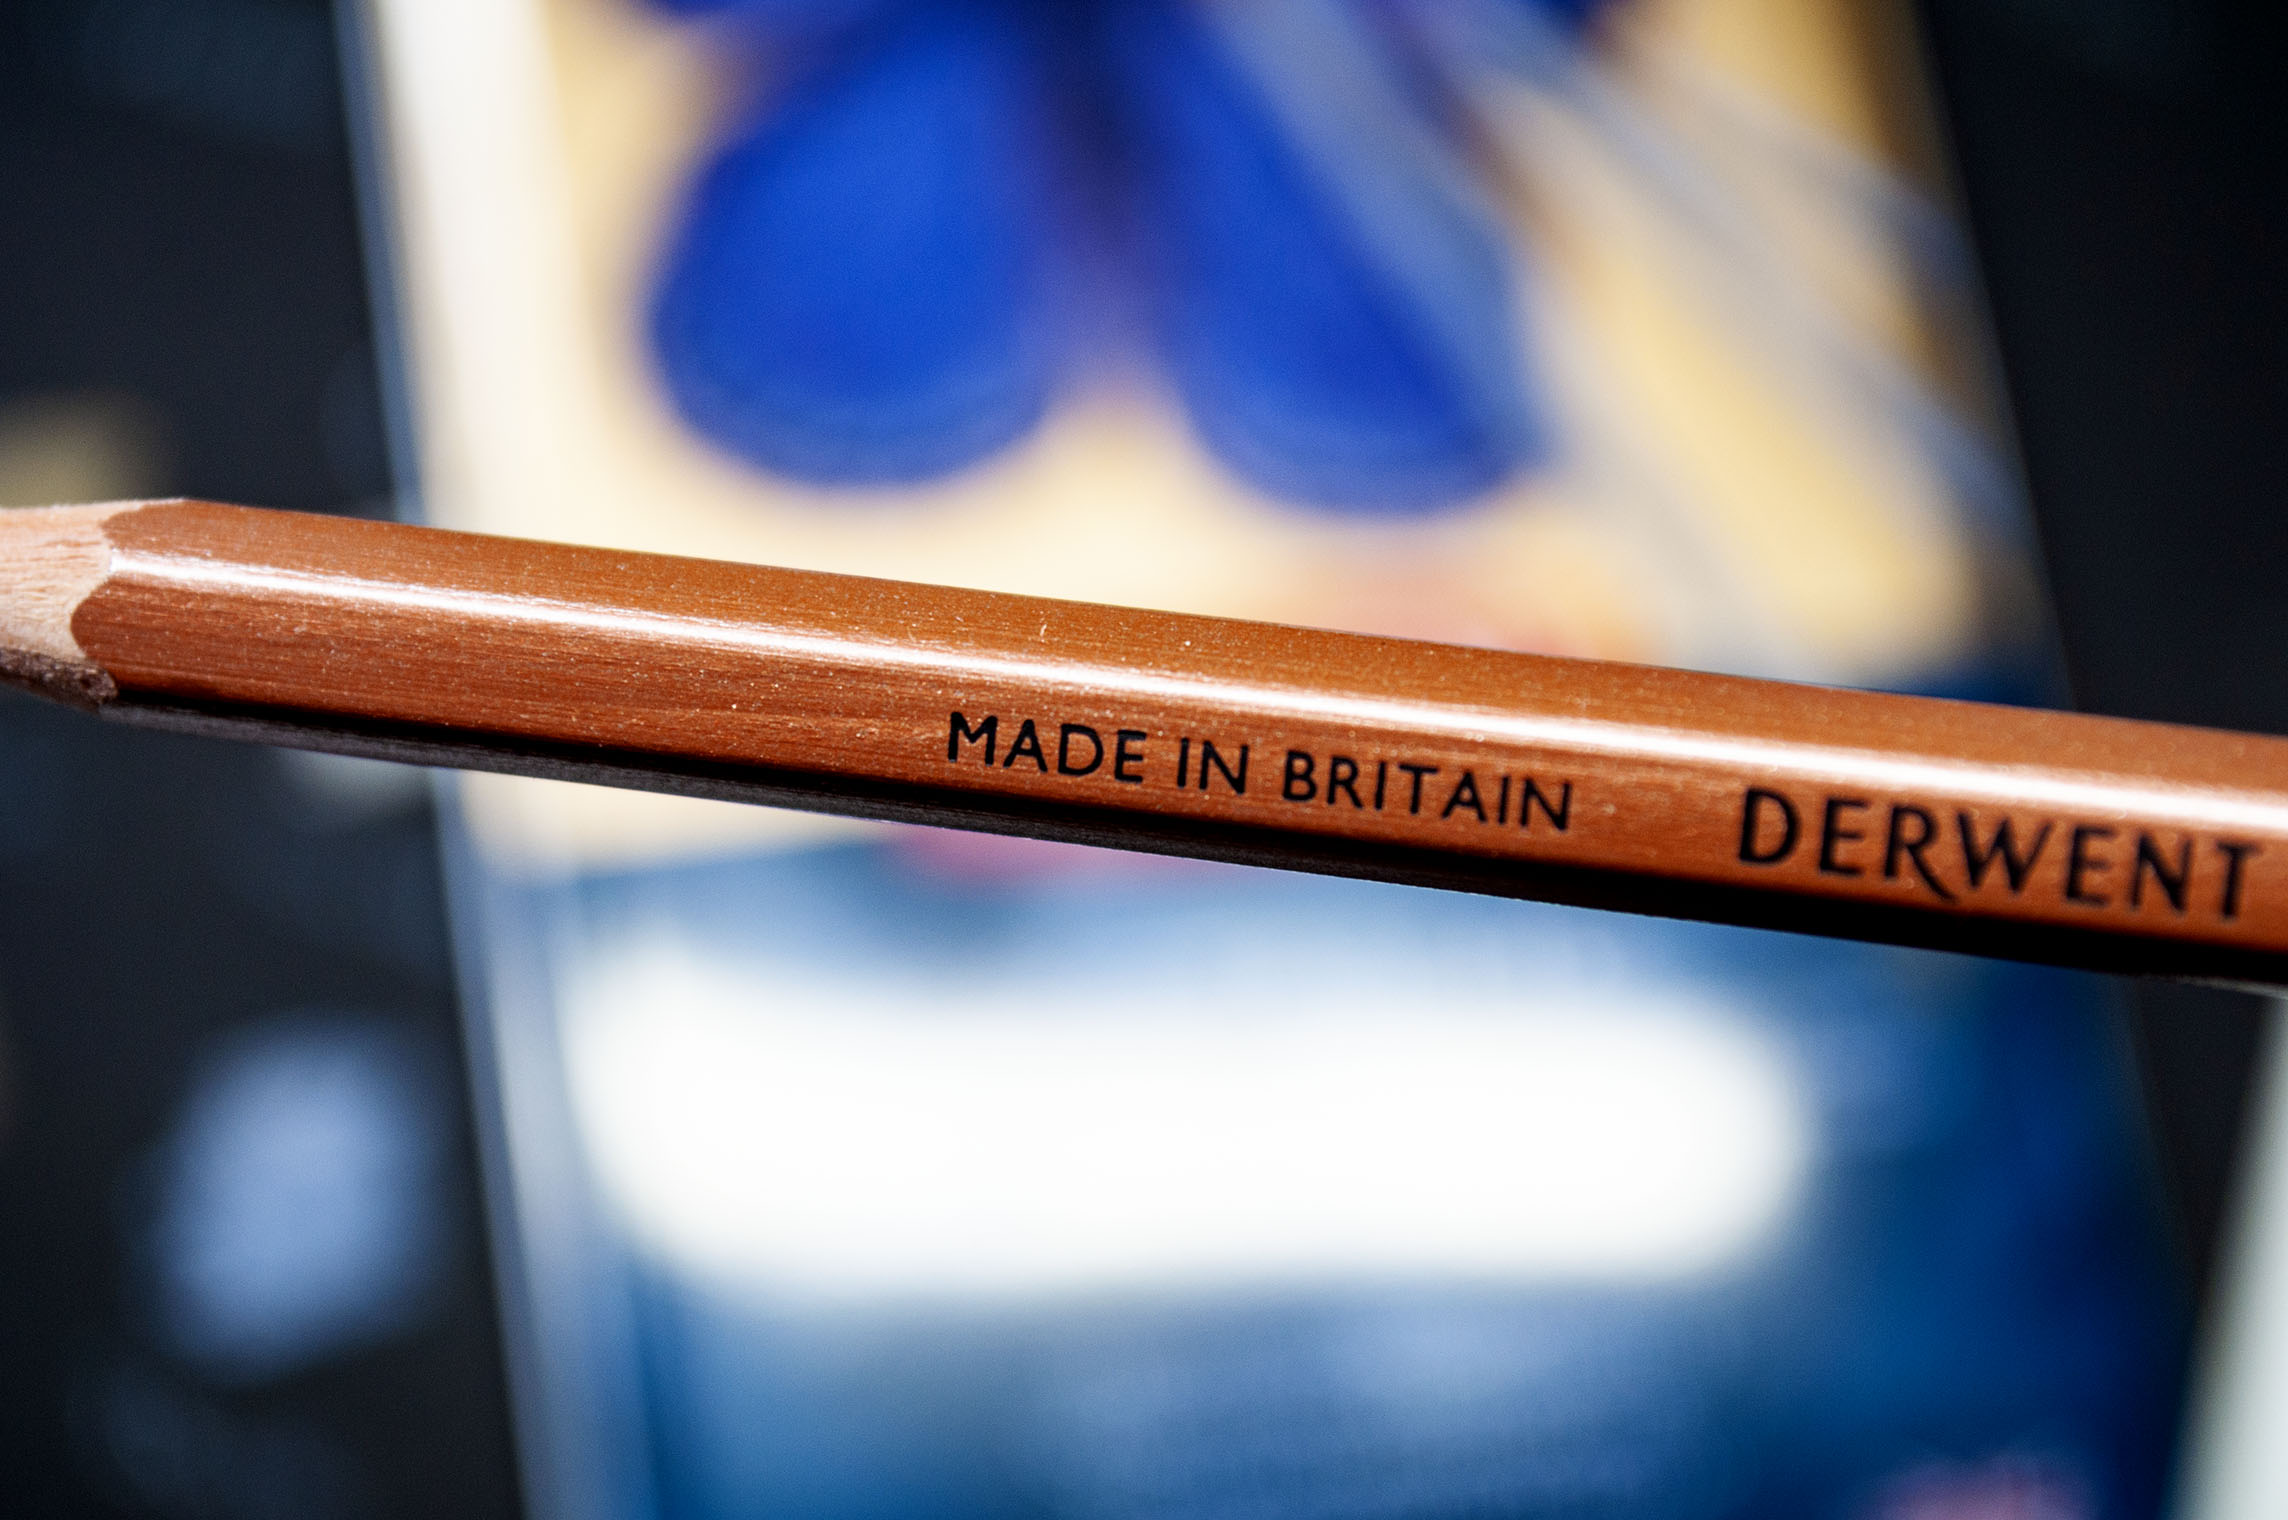 Derwent Metallic Made in Britain .jpg